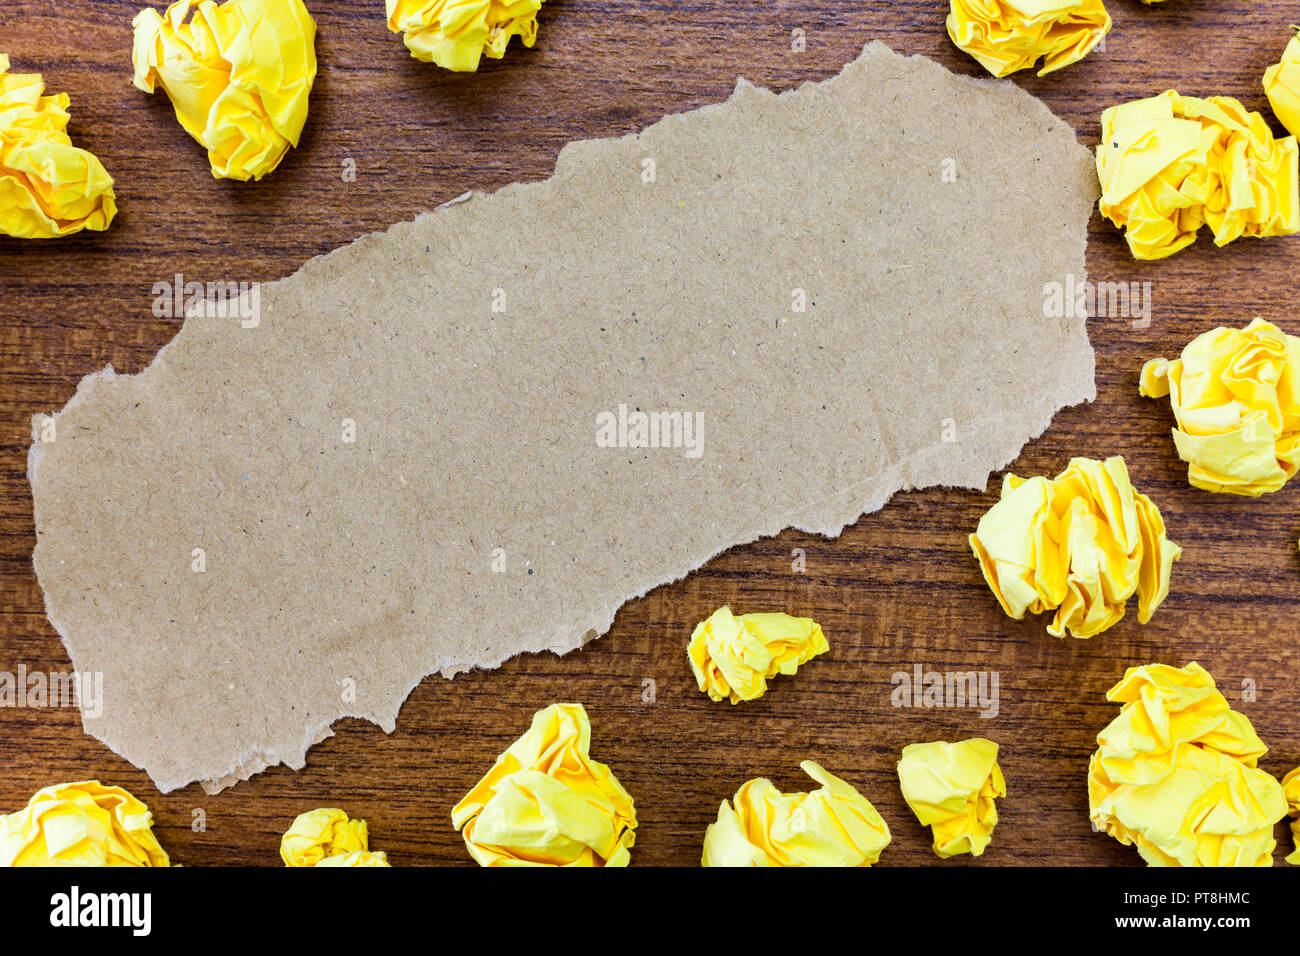 Design business concept Empty template copy space text for Ad website isolated. Blank Torn Cardboard Crumpled Sheets Color Paper Lying on Wood Surface - Stock Image